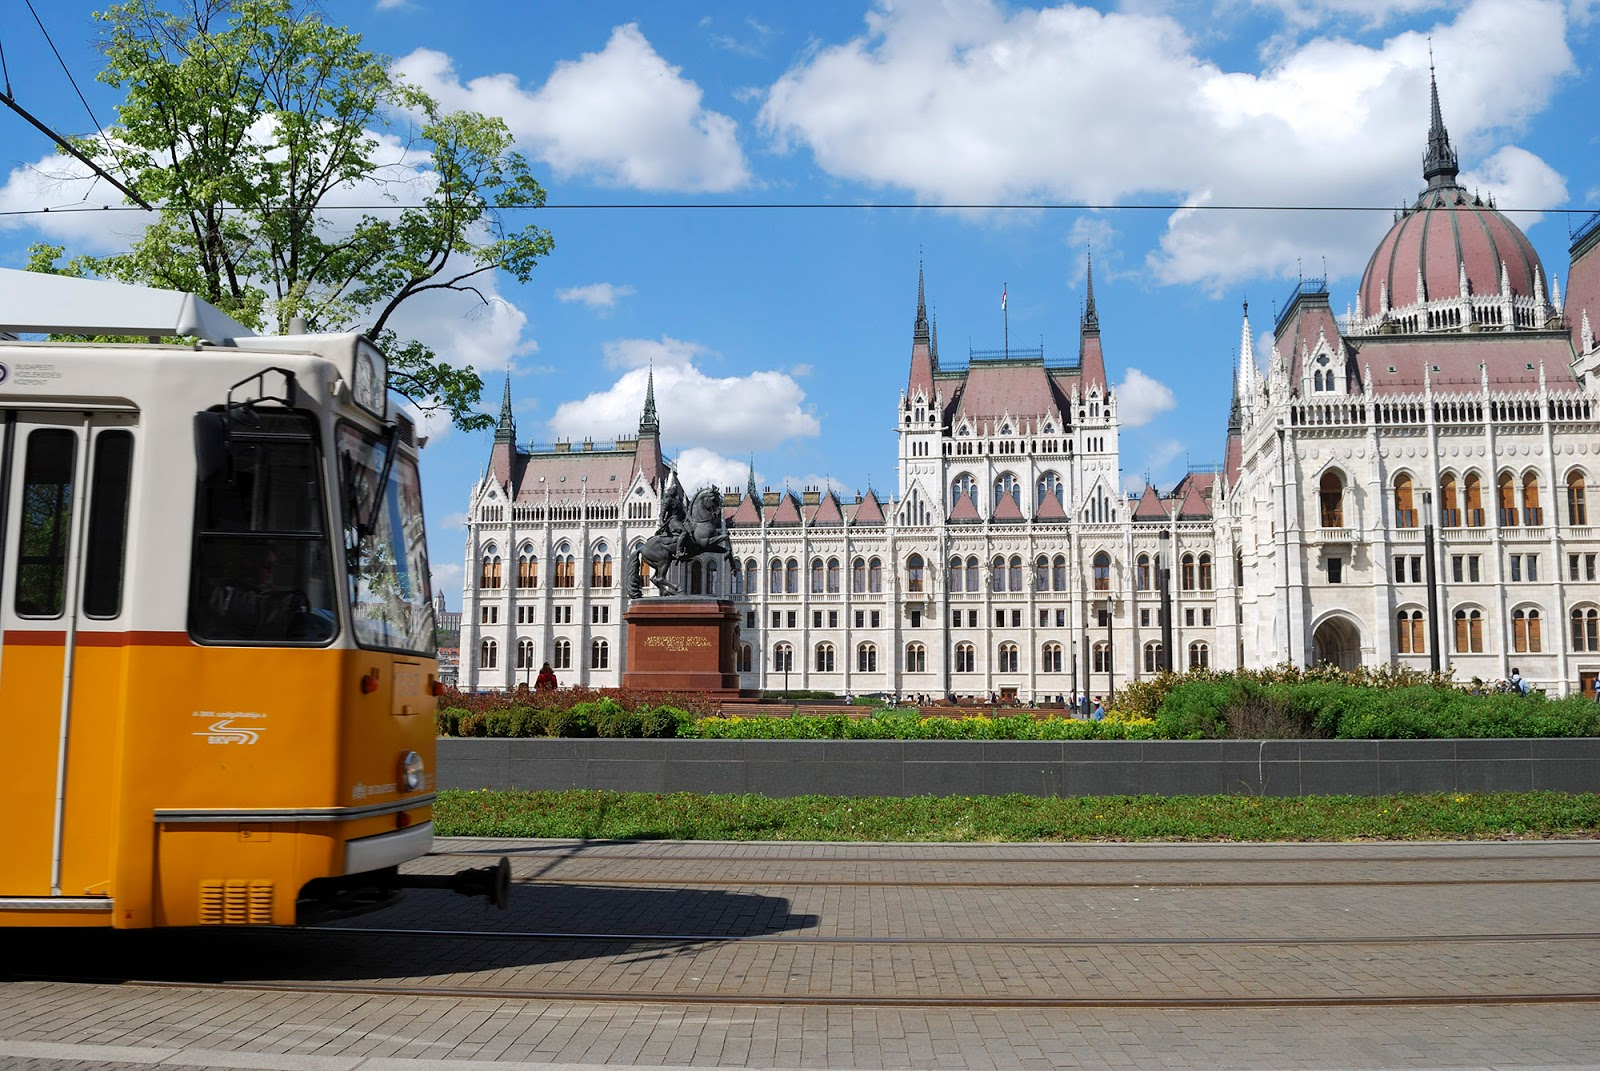 budapest instagrammable instagram worthy spot photography yellow tram parliament building